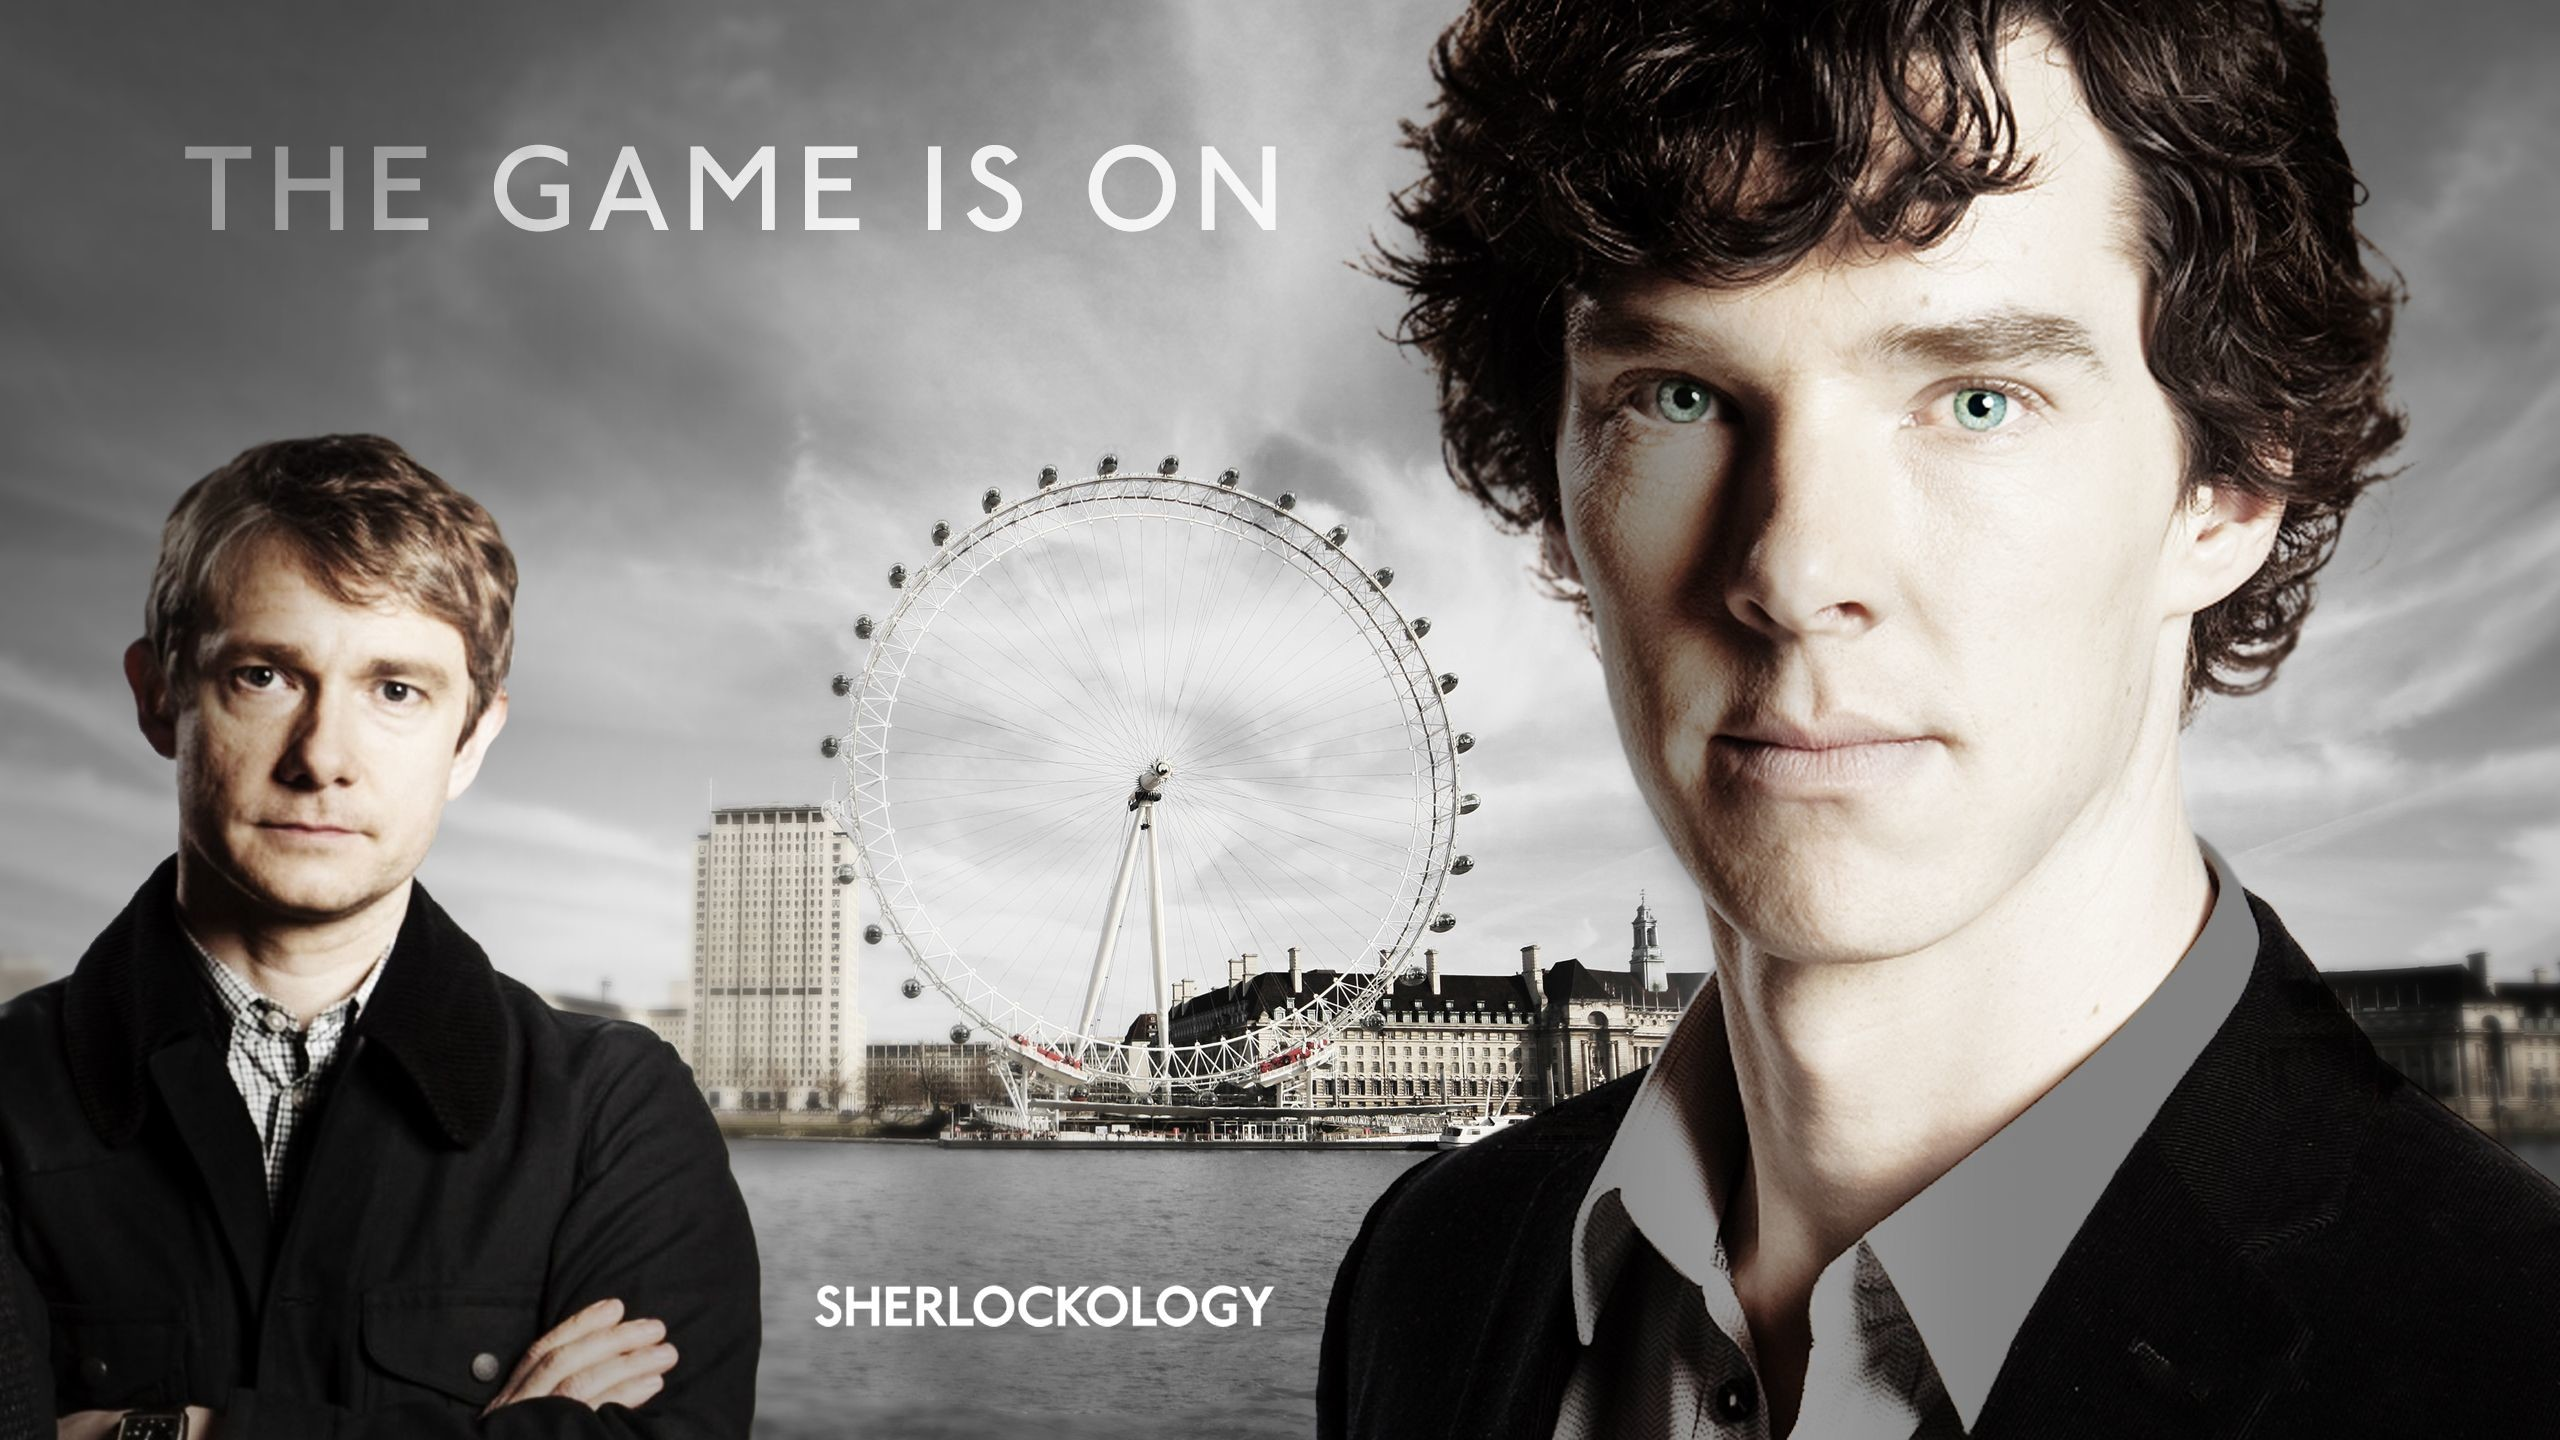 Benedict Cumberbatch Wallpaper Hd: Sherlock Holmes Bbc Wallpapers HD (72+ Background Pictures